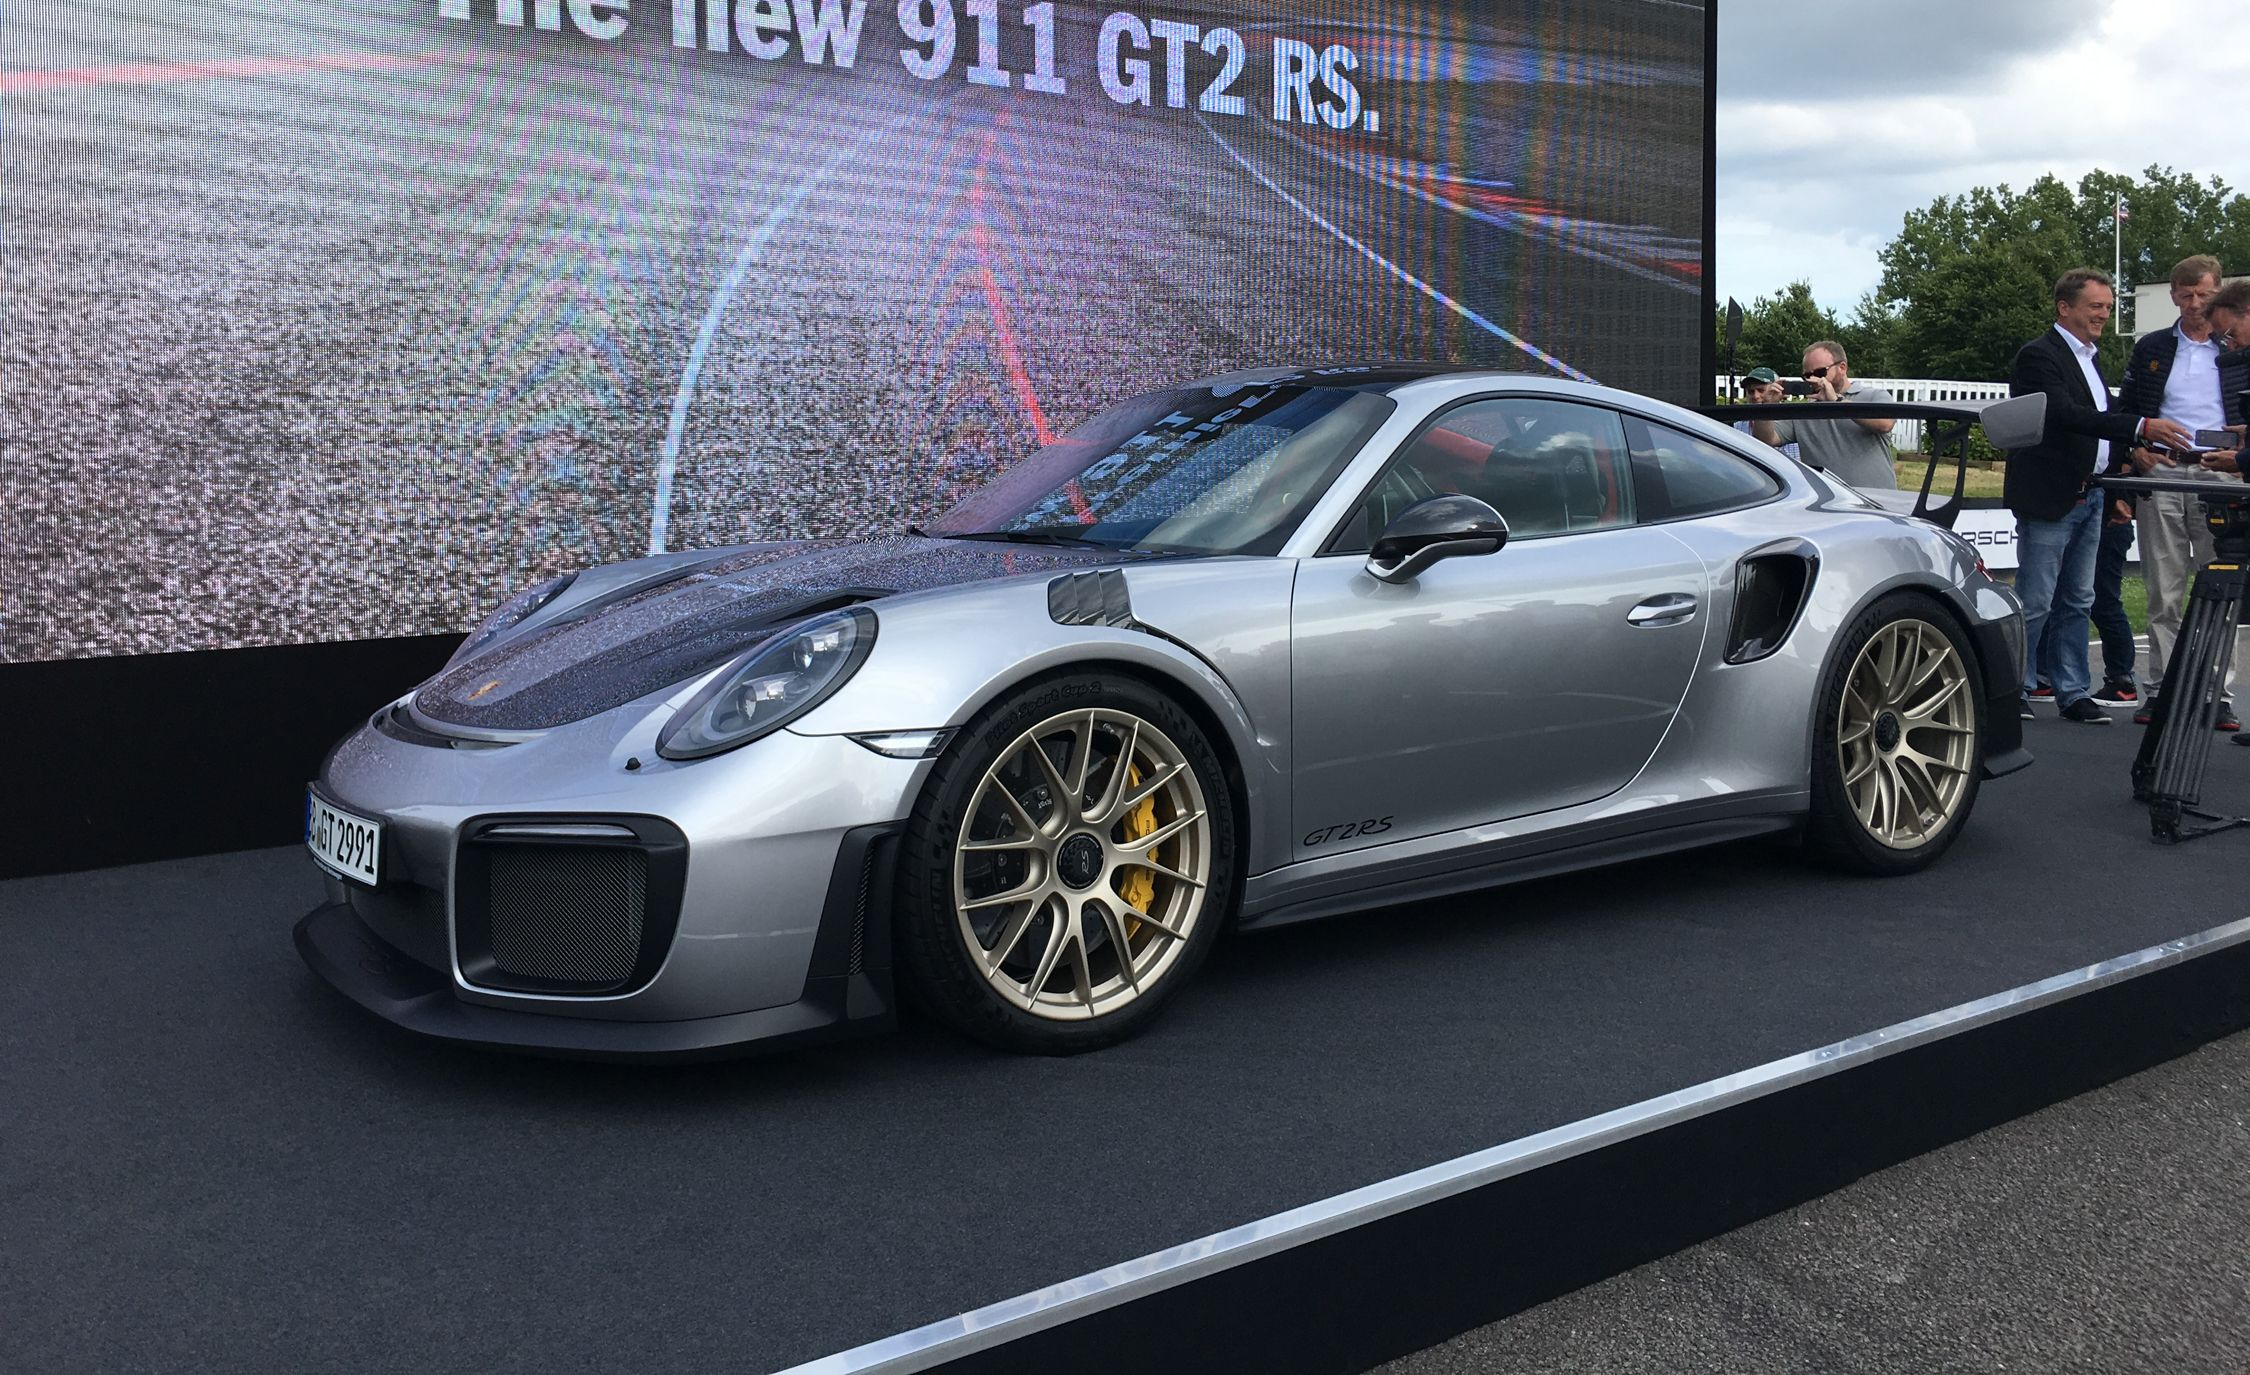 2018-Porsche-911-GT2-RS-106-1 Extraordinary Porsche 911 Gt2 Rs Used Cars Trend